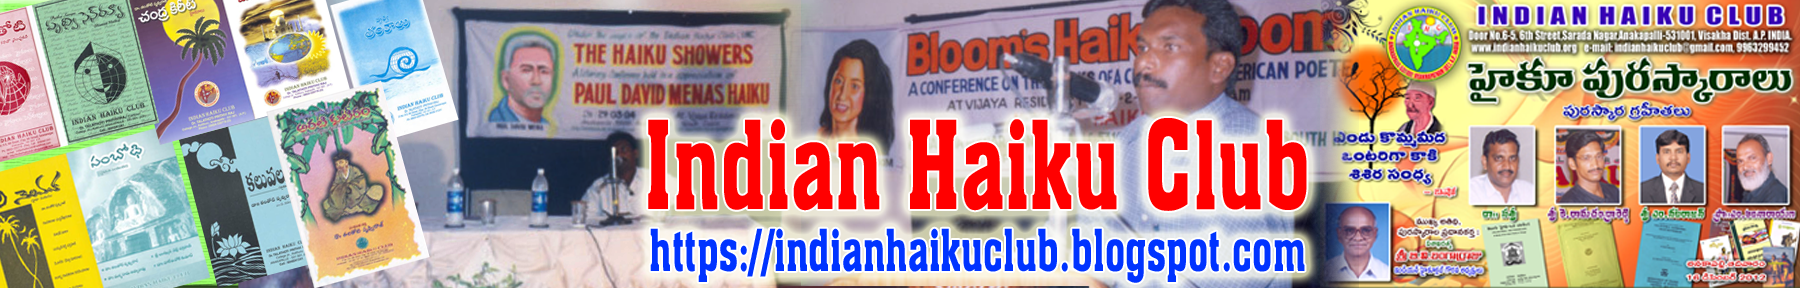 indian haiku club-litt.in-kavitalathoti-anakapalli